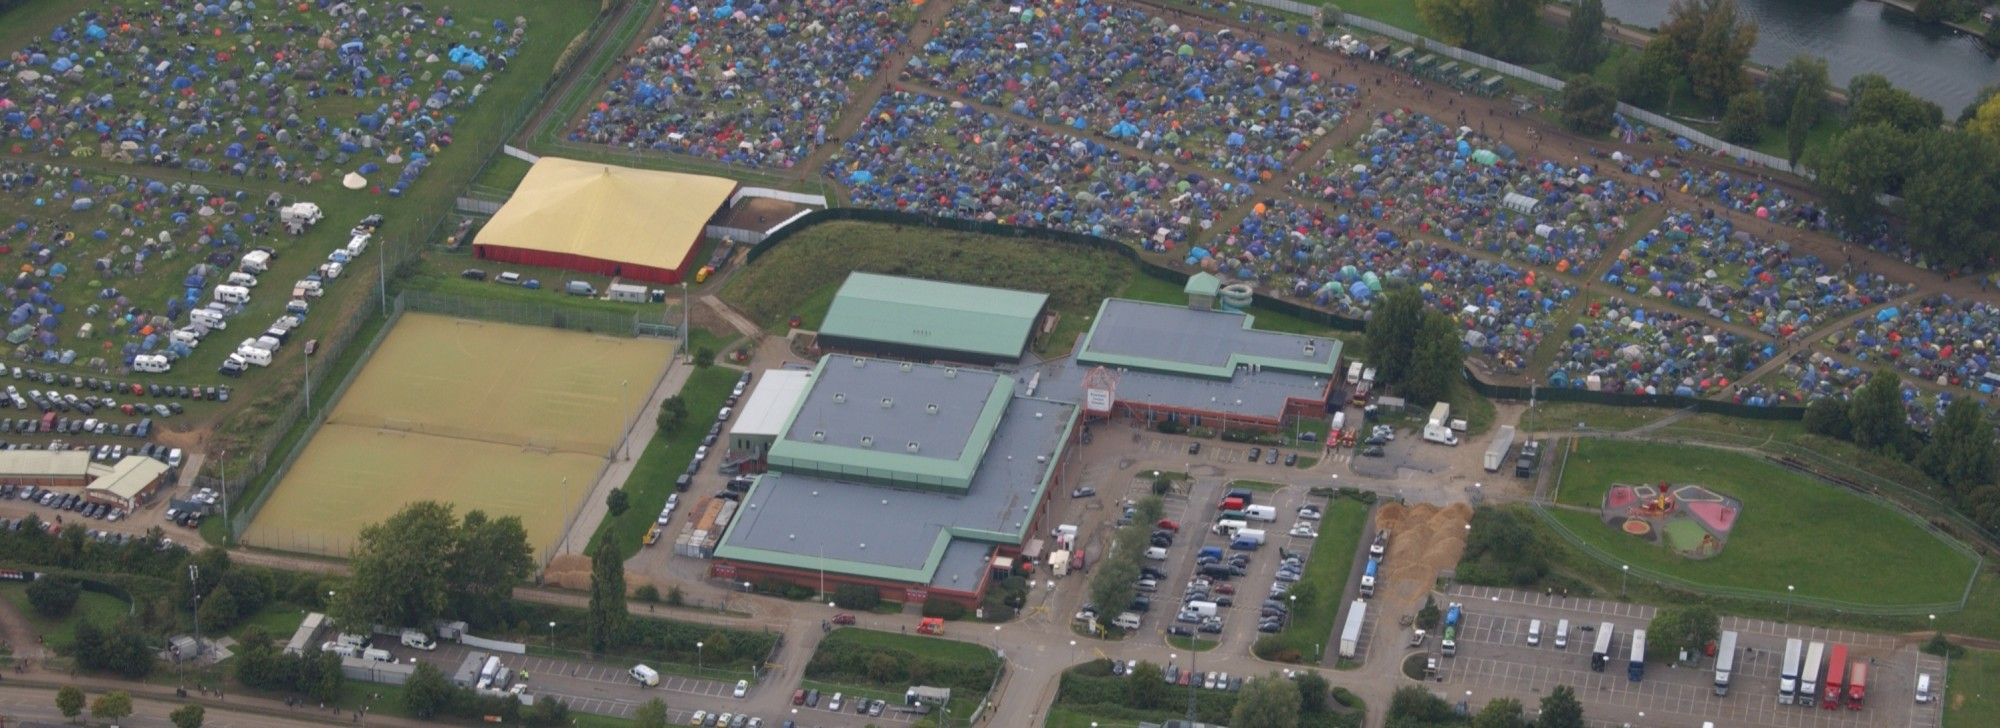 Reading Festival Air Photo, from Rivermead Leisure Complex